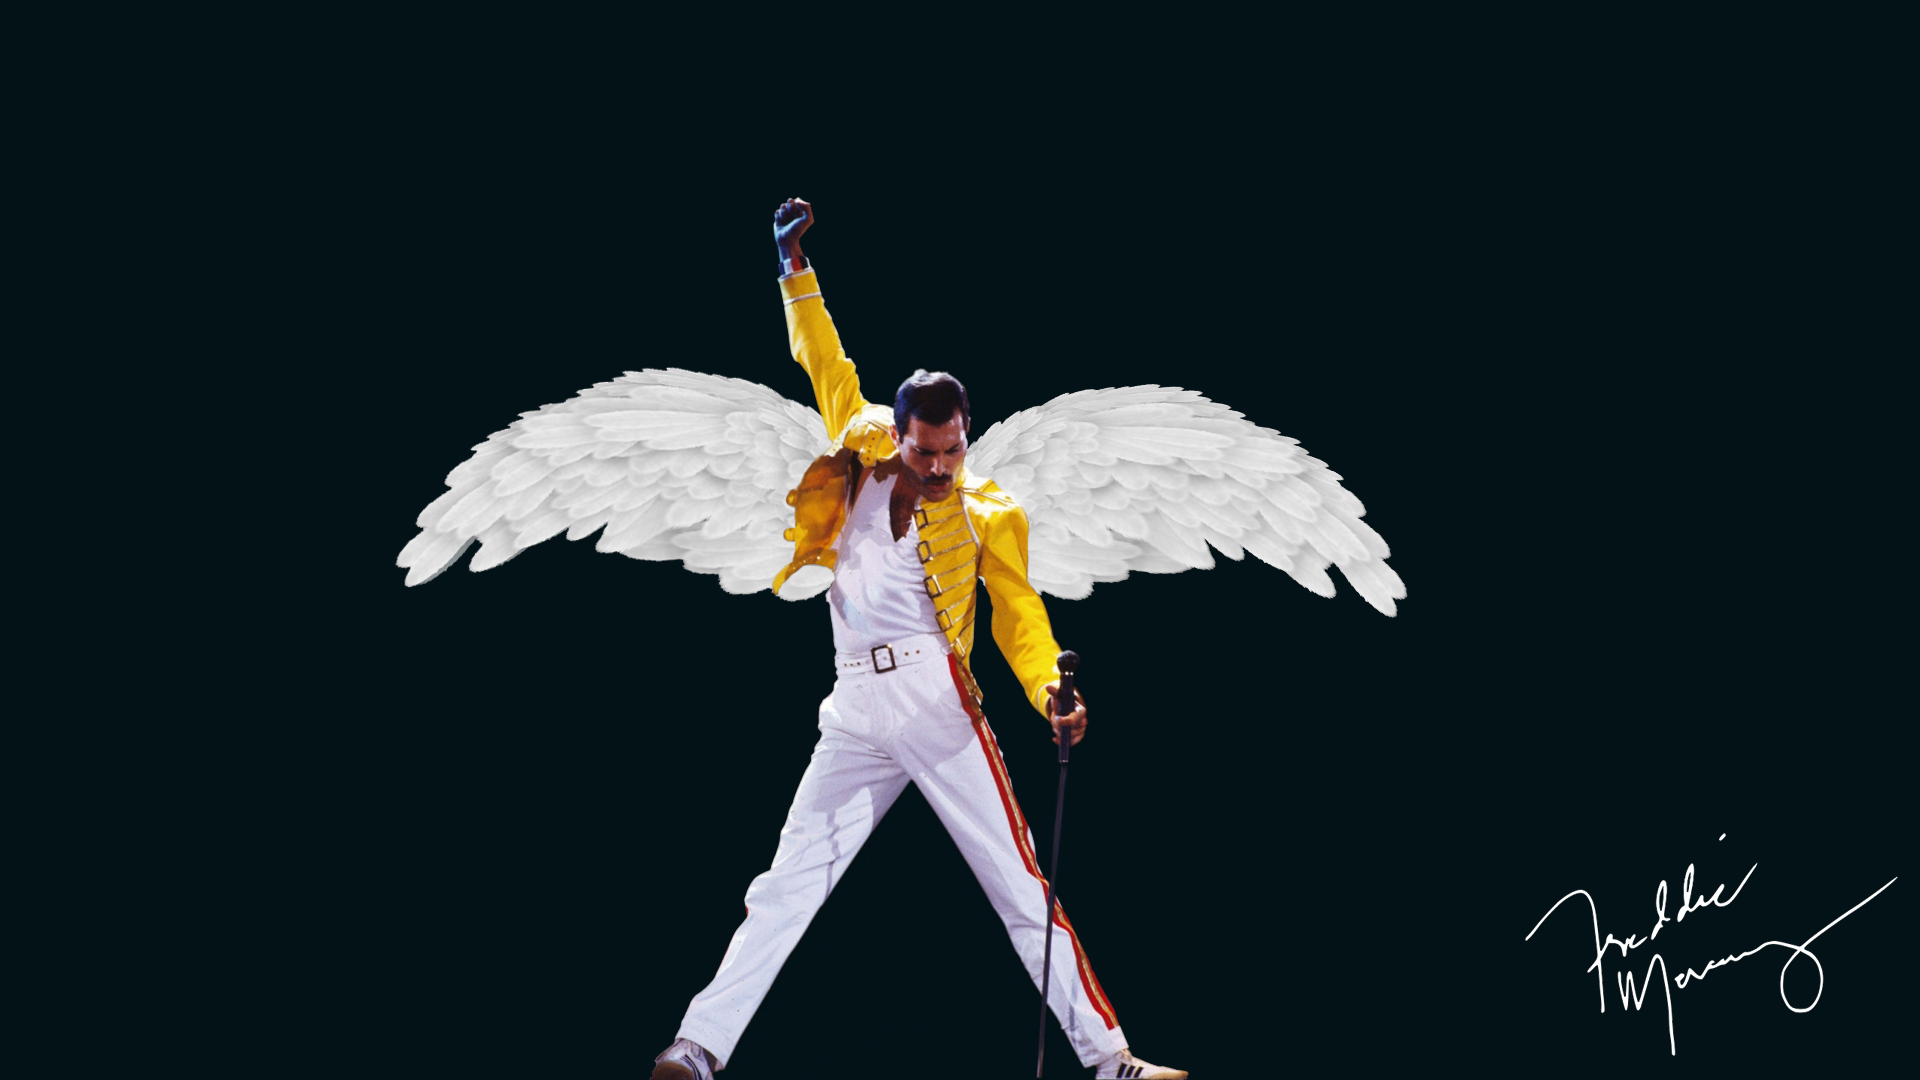 807548-freddie-mercury-wallpaper